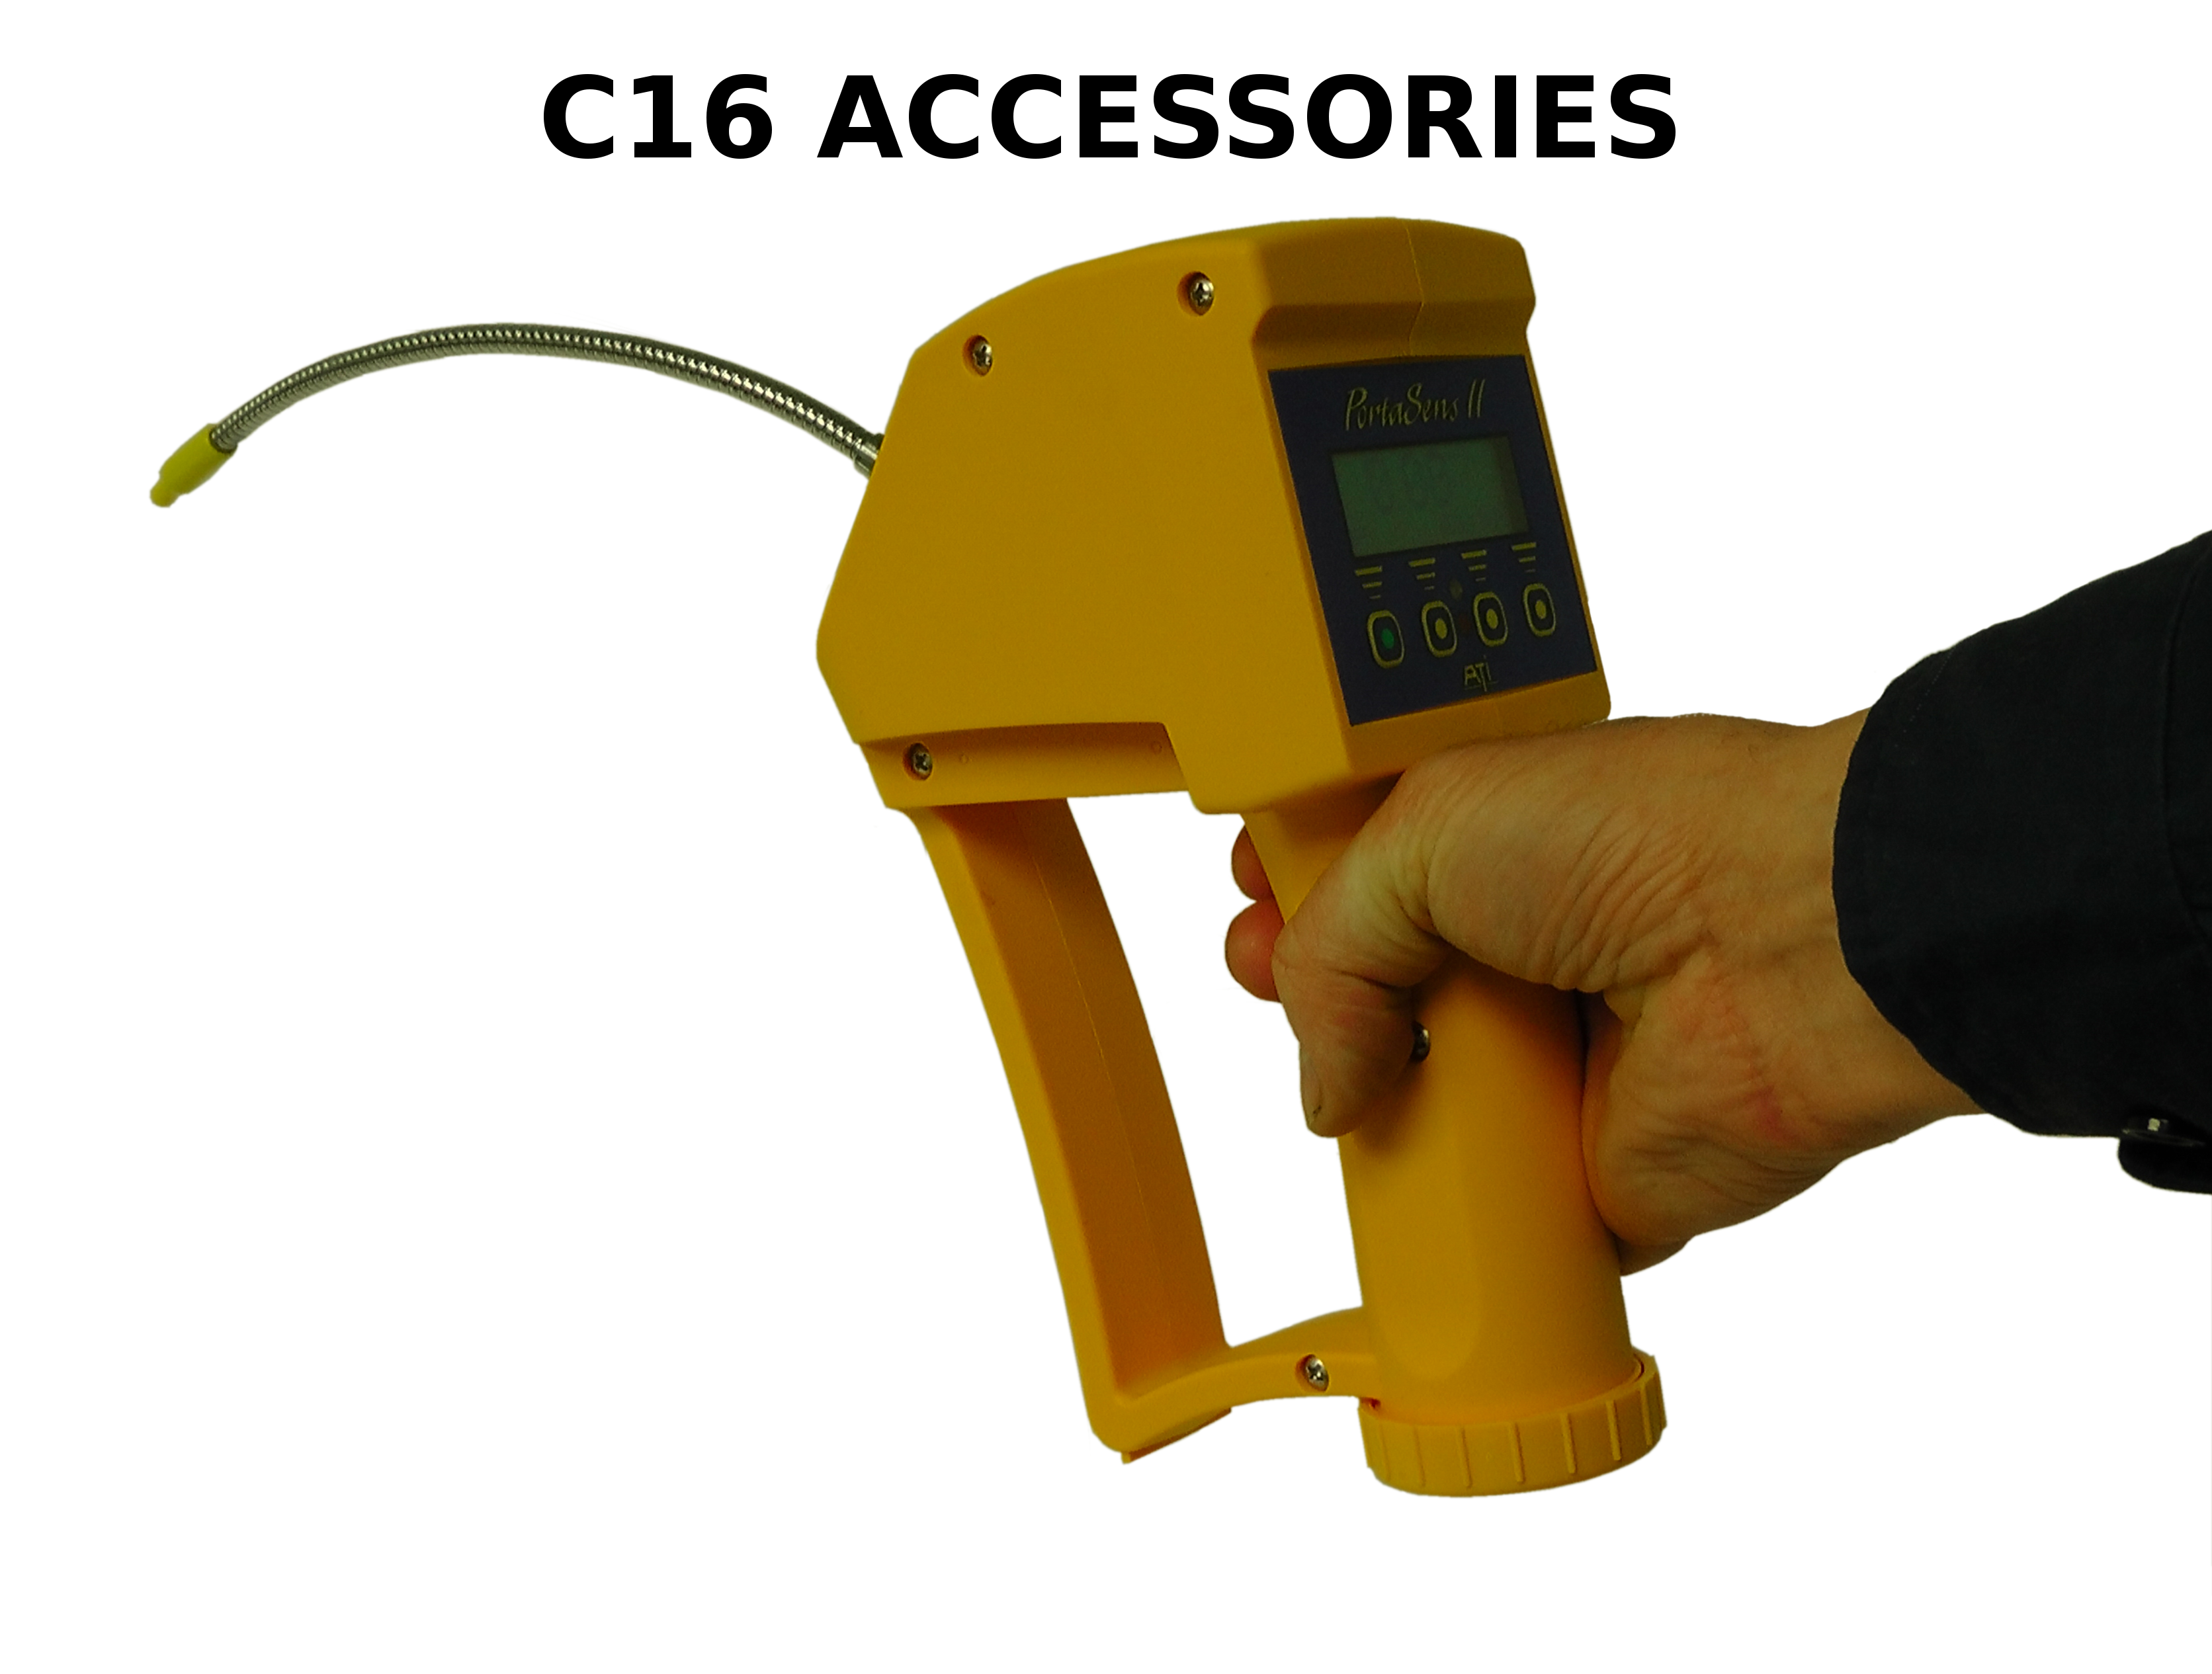 Accessories and spare parts for the C16